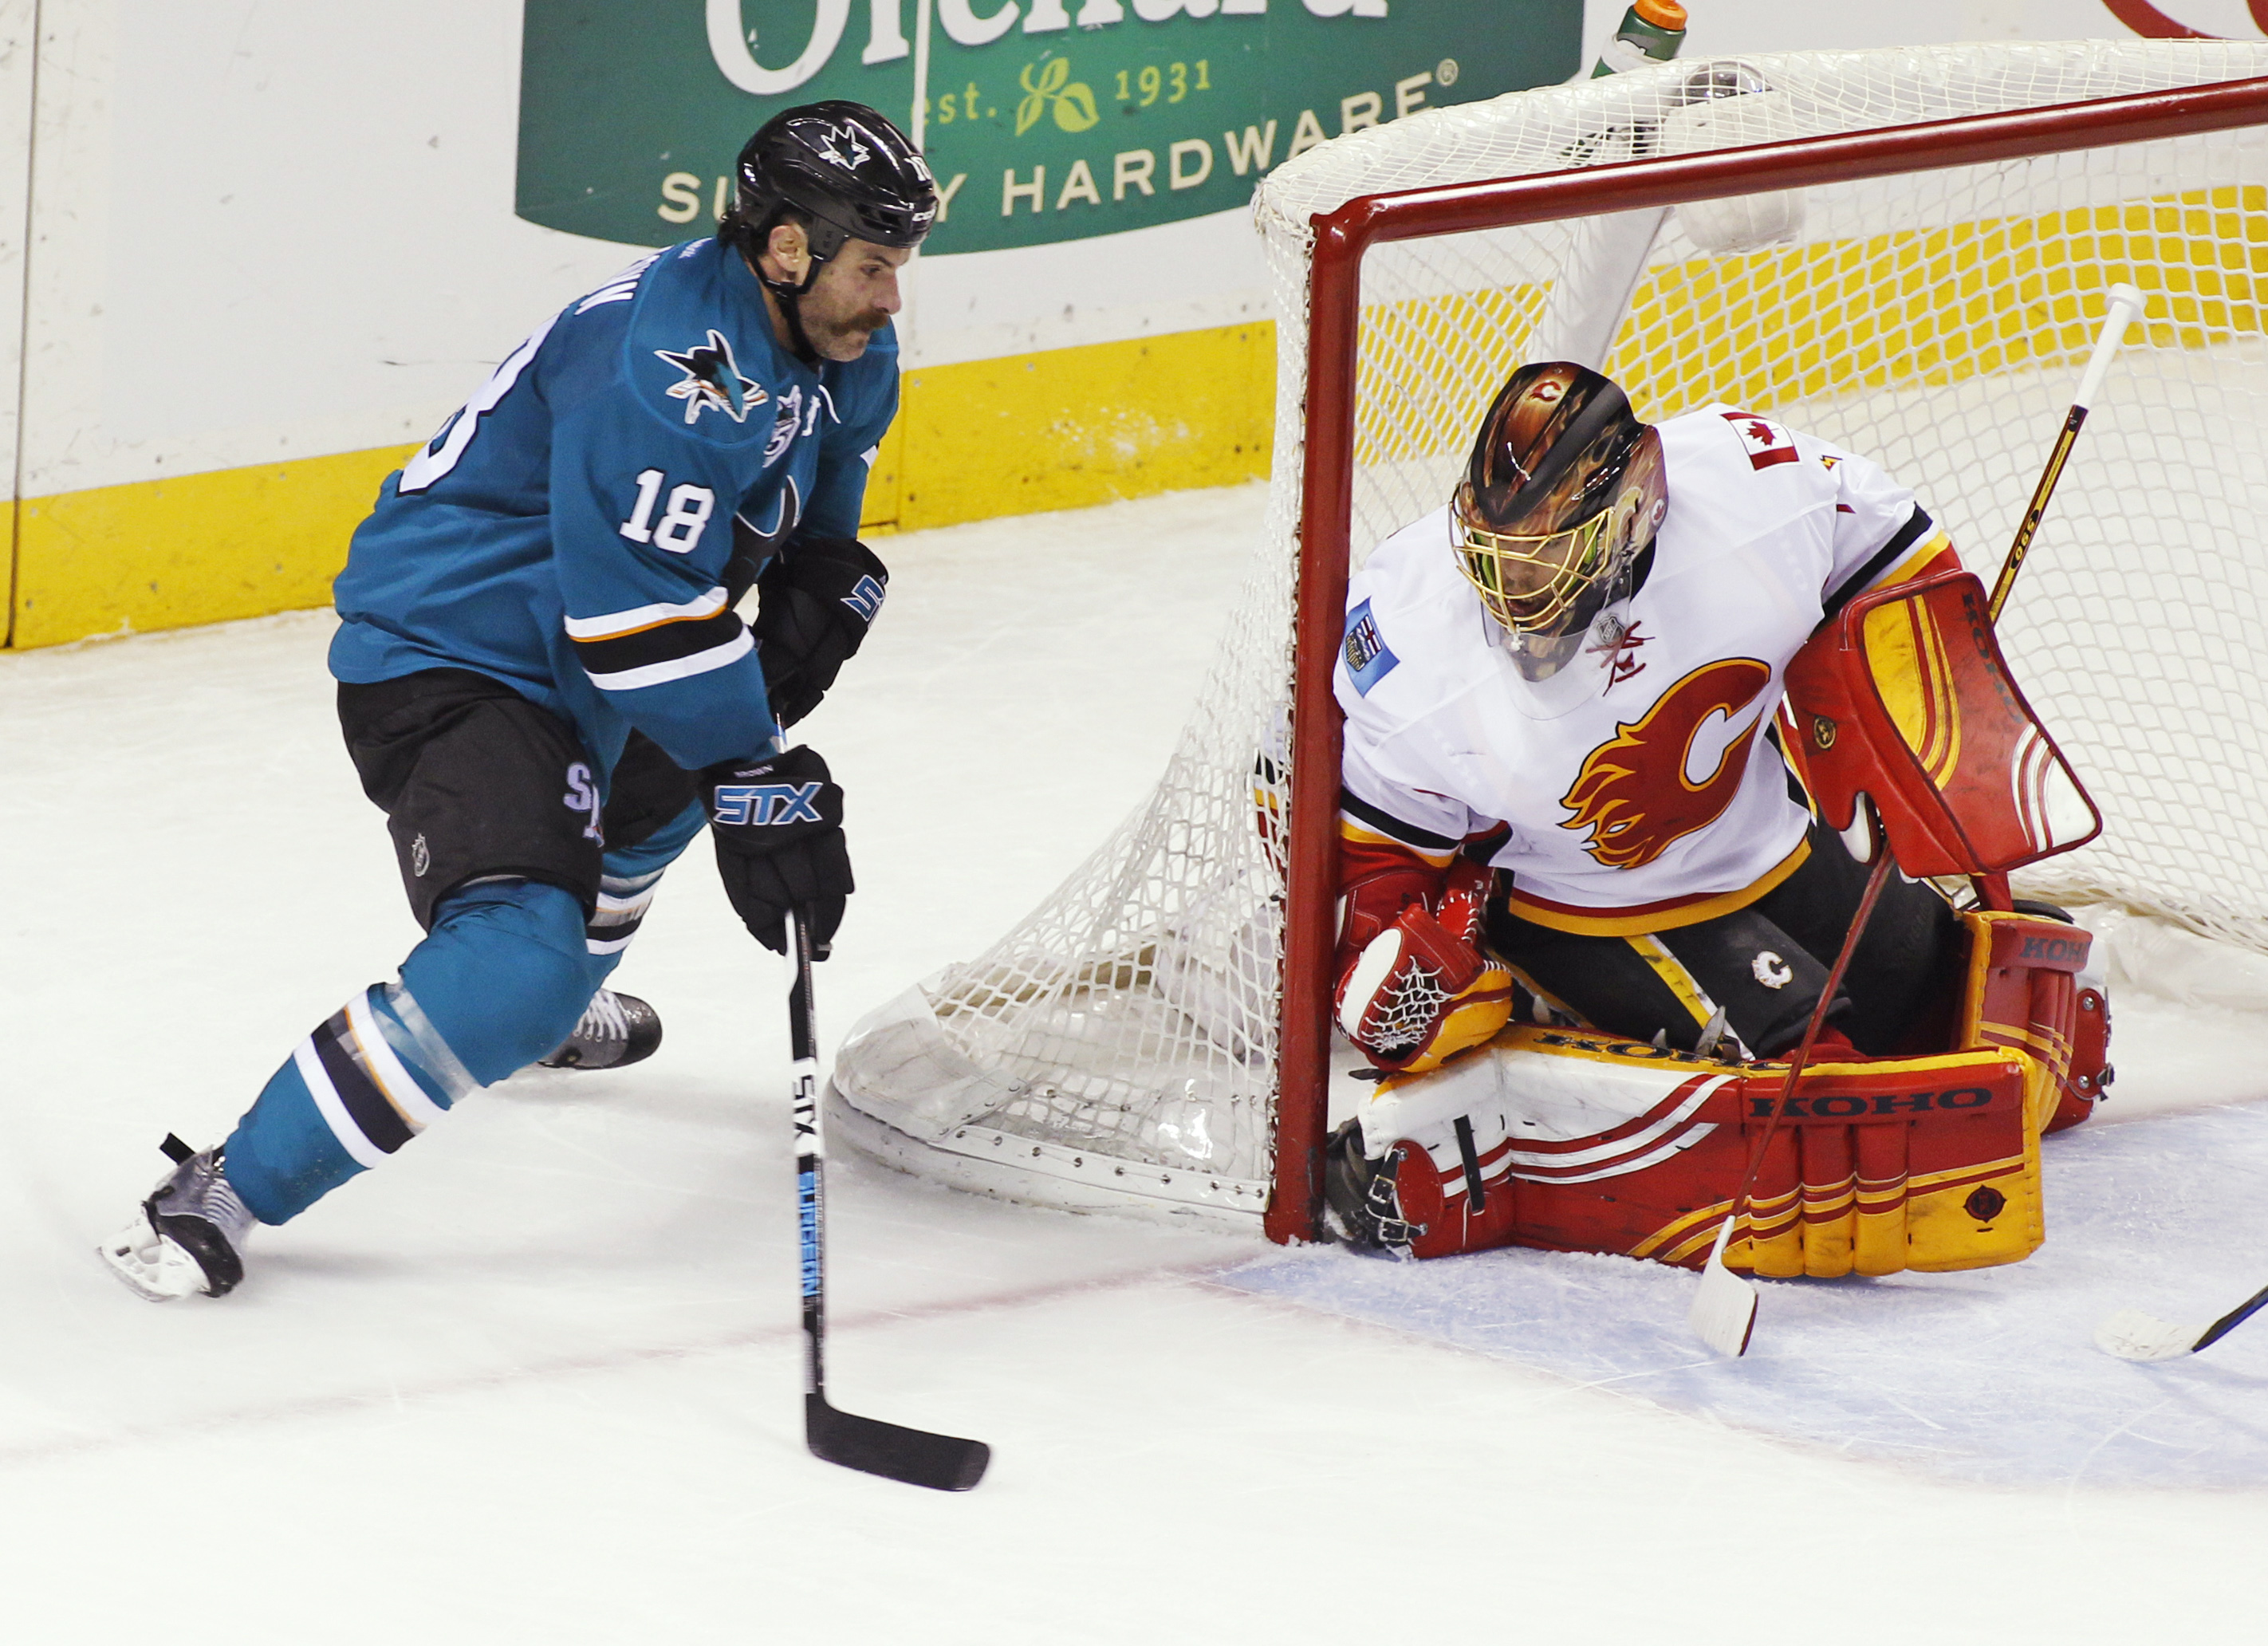 San Jose Sharks' Mike Brown, left, shoots as Calgary Flames goalie Jonas Hiller defends during the second period of an NHL hockey game Saturday, Nov. 28, 2015, in San Jose, Calif. (AP Photo/George Nikitin)